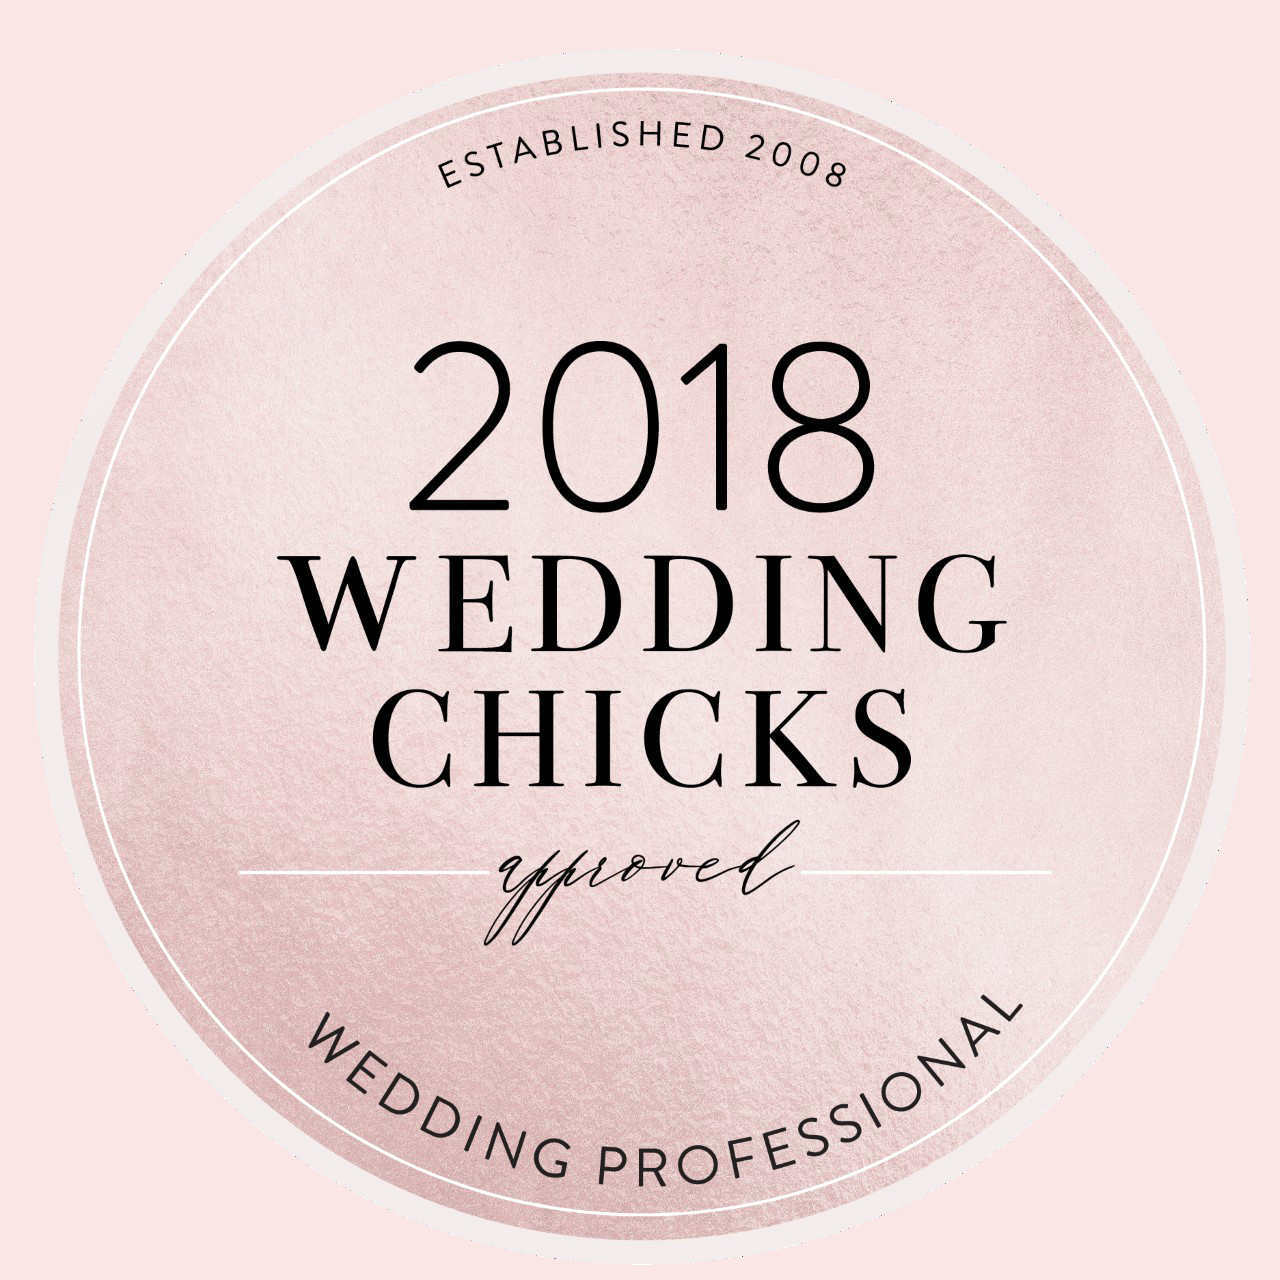 Wedding-Chicks-MEMBER-2018-Alexa-reception